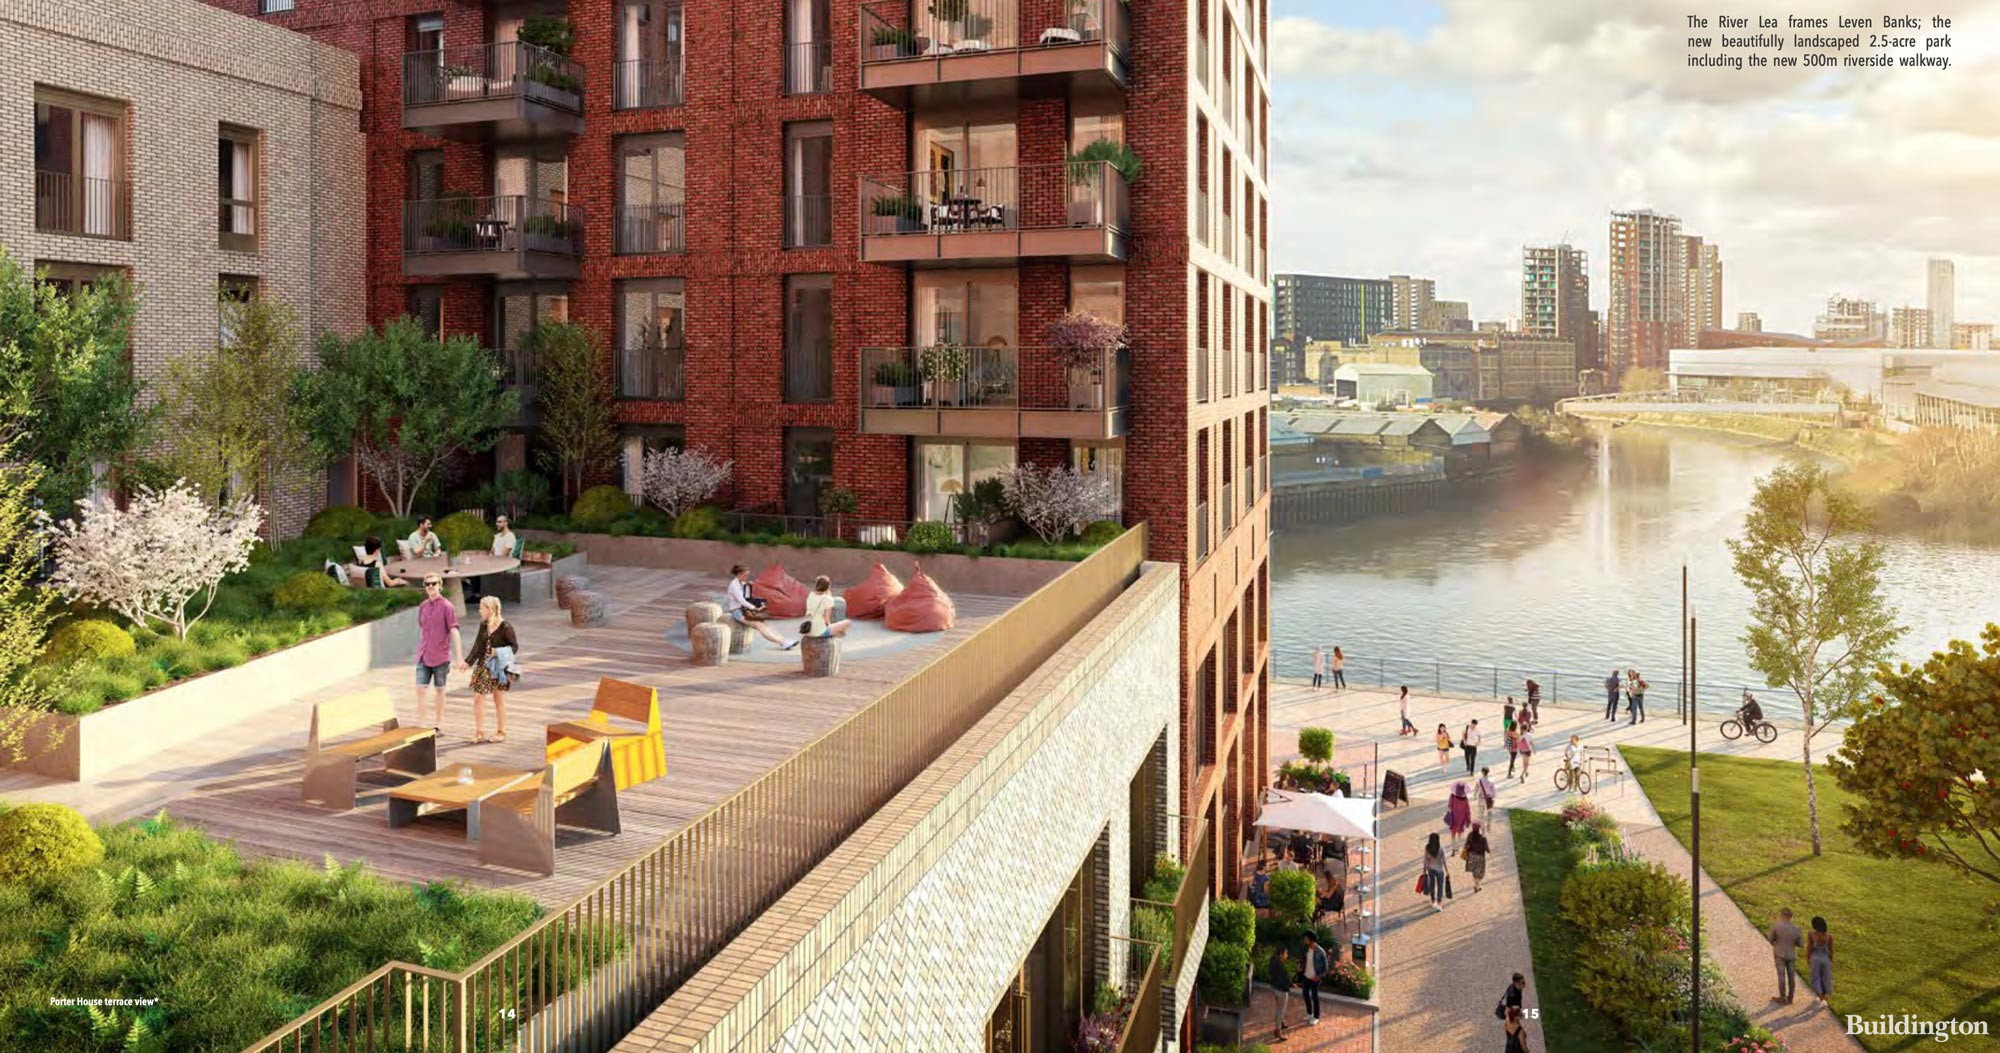 Screen capture from Poplar Riverside brochure. The River Lea frames Leven Banks - the new landscaped 2.5-acre park including the new 500m riverside walkway.